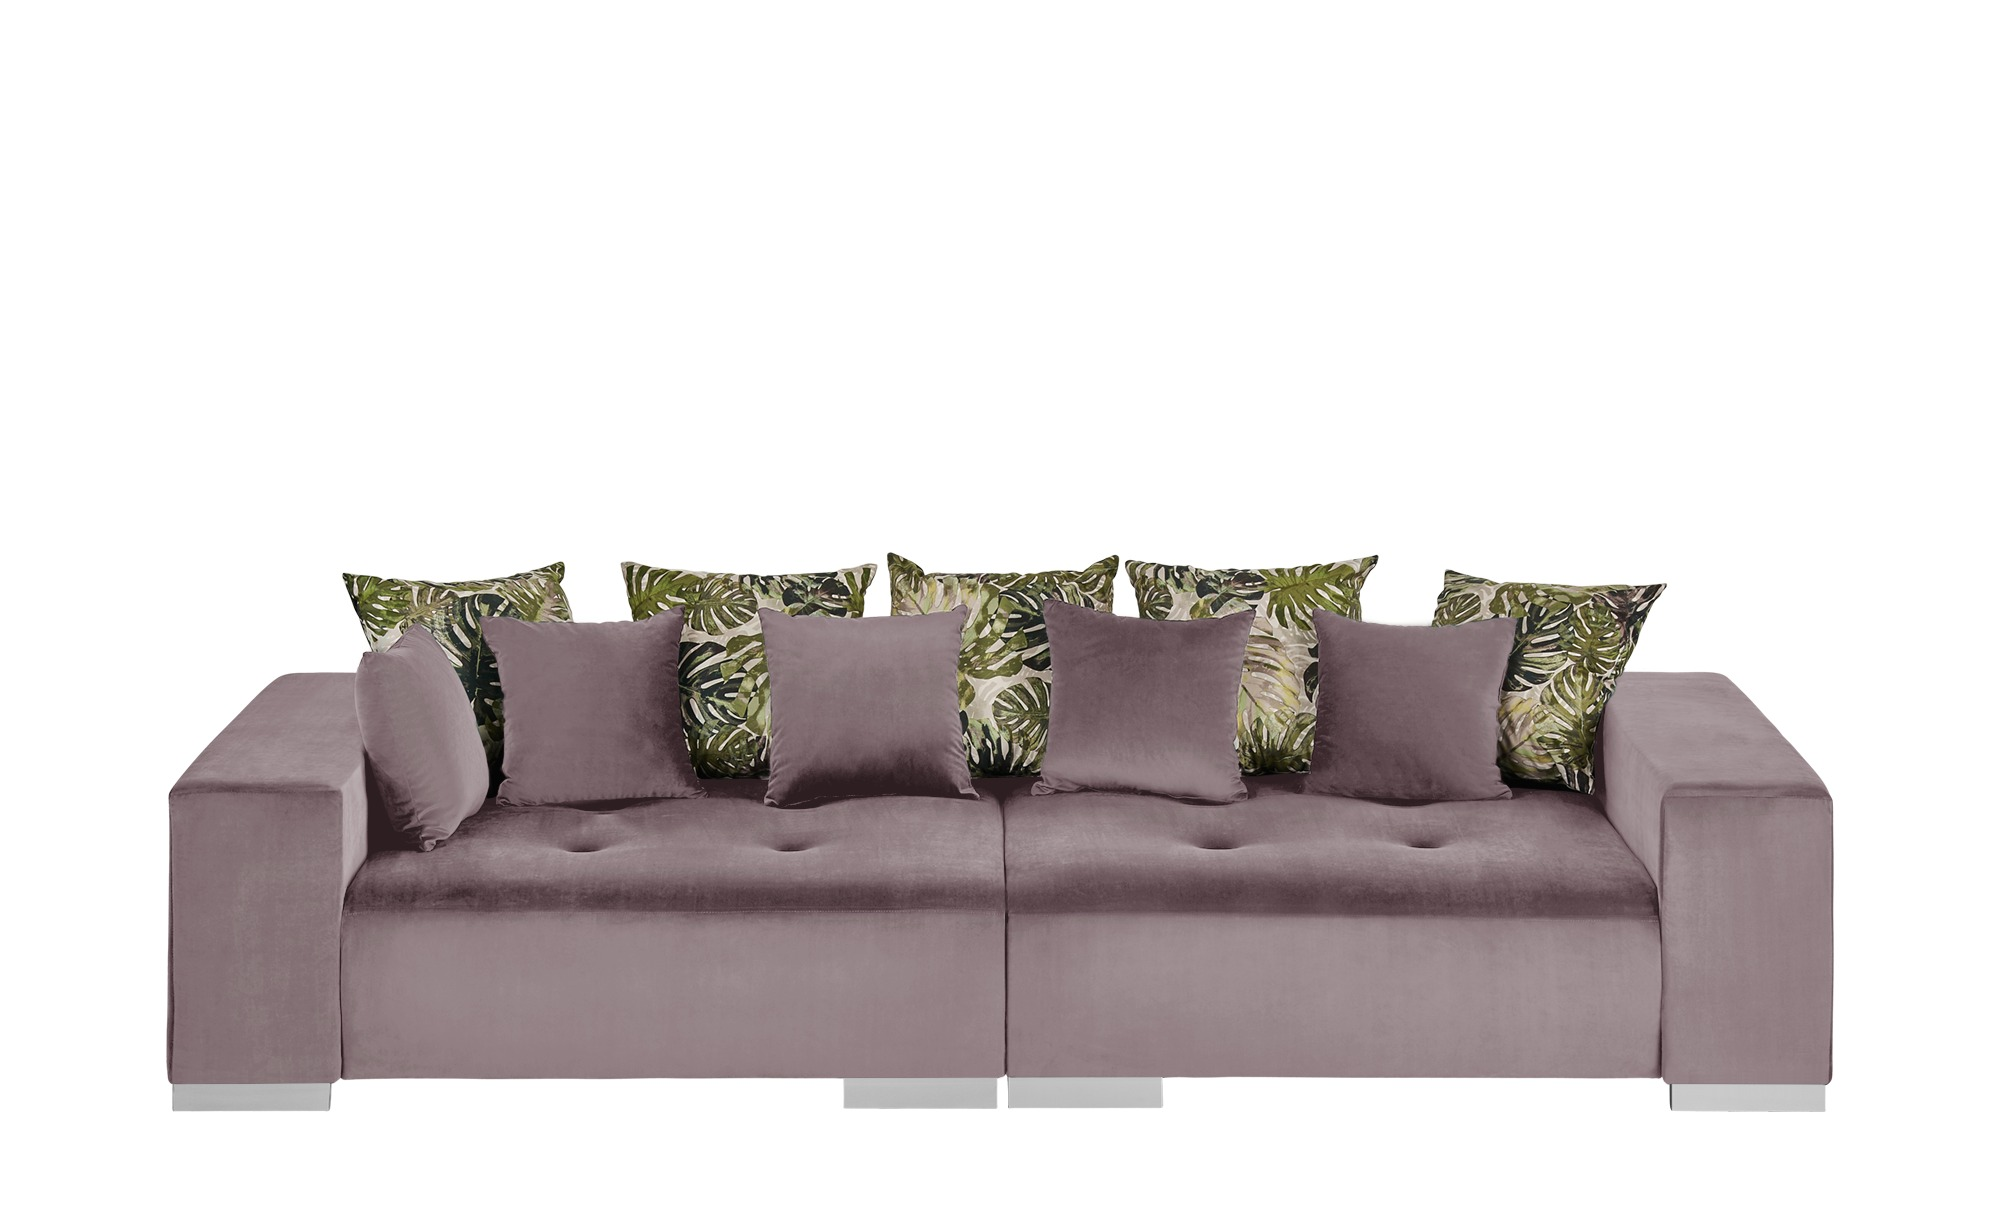 Sofa Altrosa Switch Big Sofa Altrosa Mikrofaser Kim Altrosa